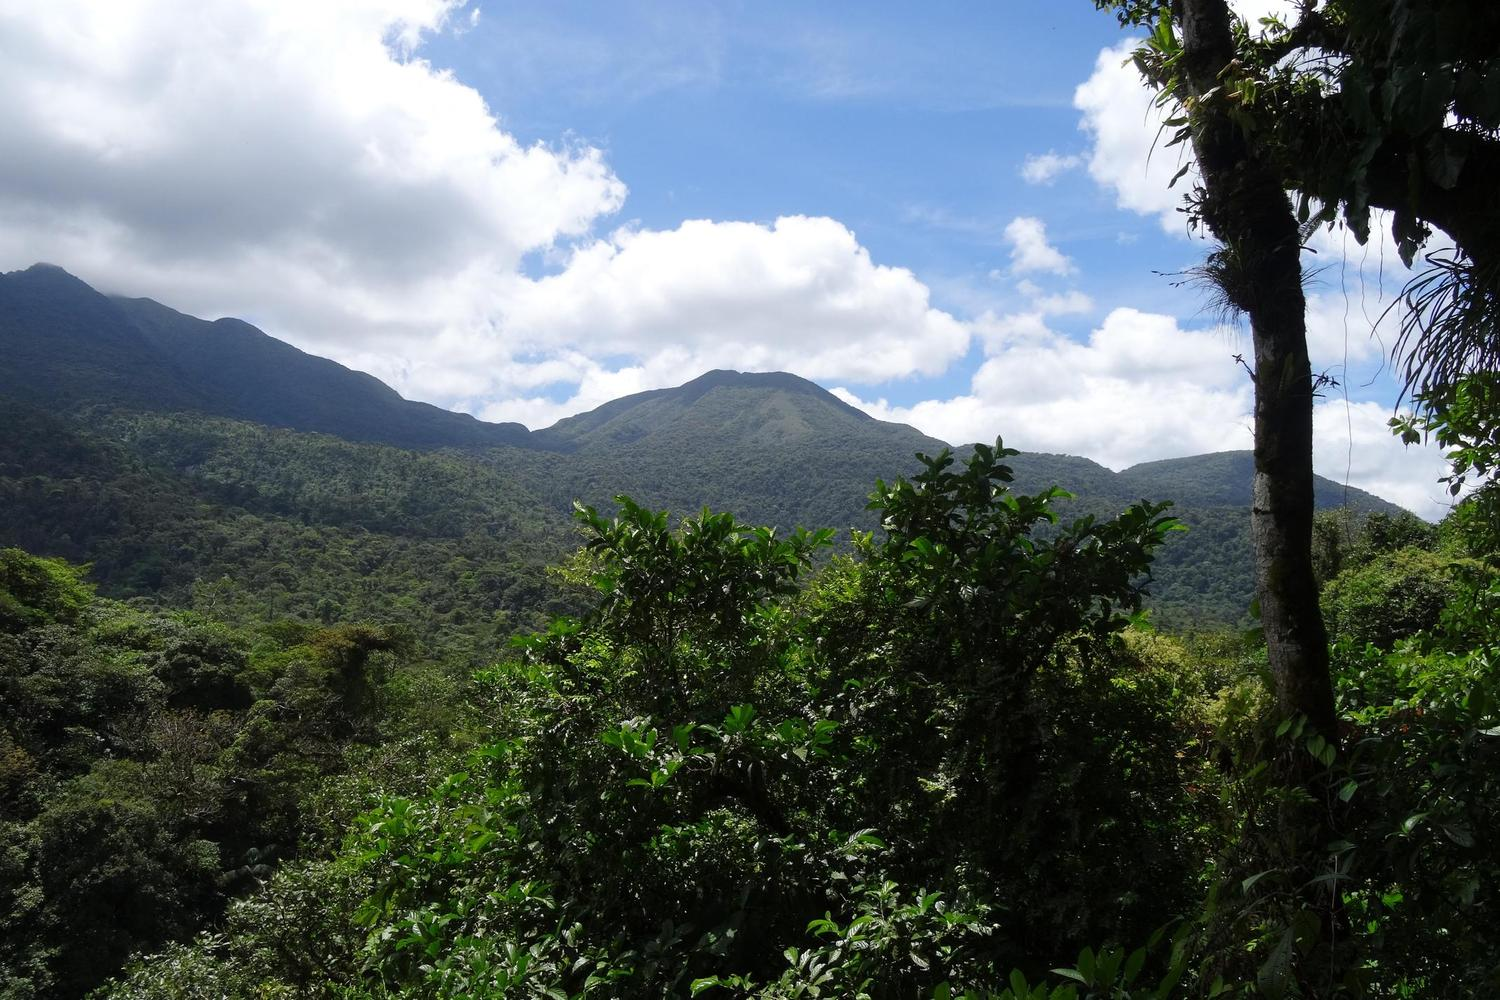 Looking out over one of the peaks of the Tenorio volcano